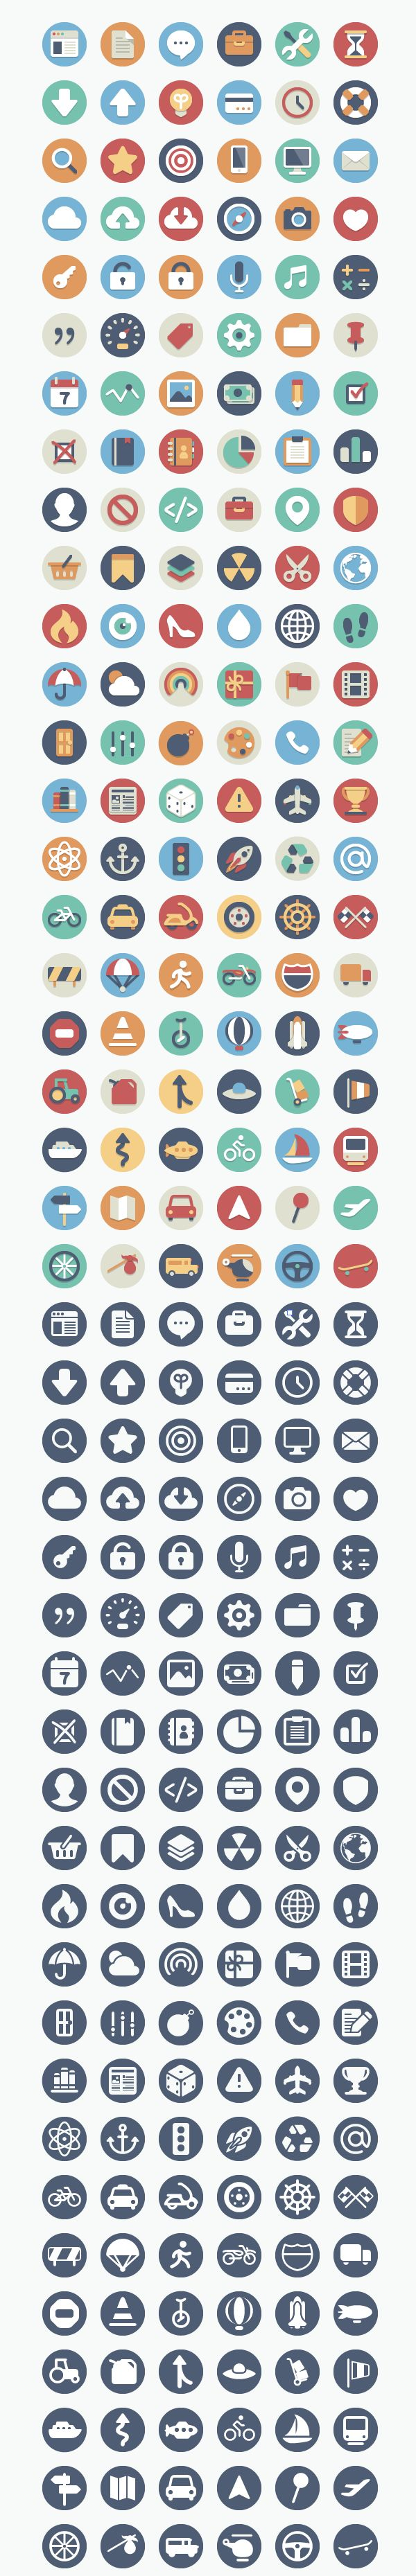 Beautiful Flat Icons for Free